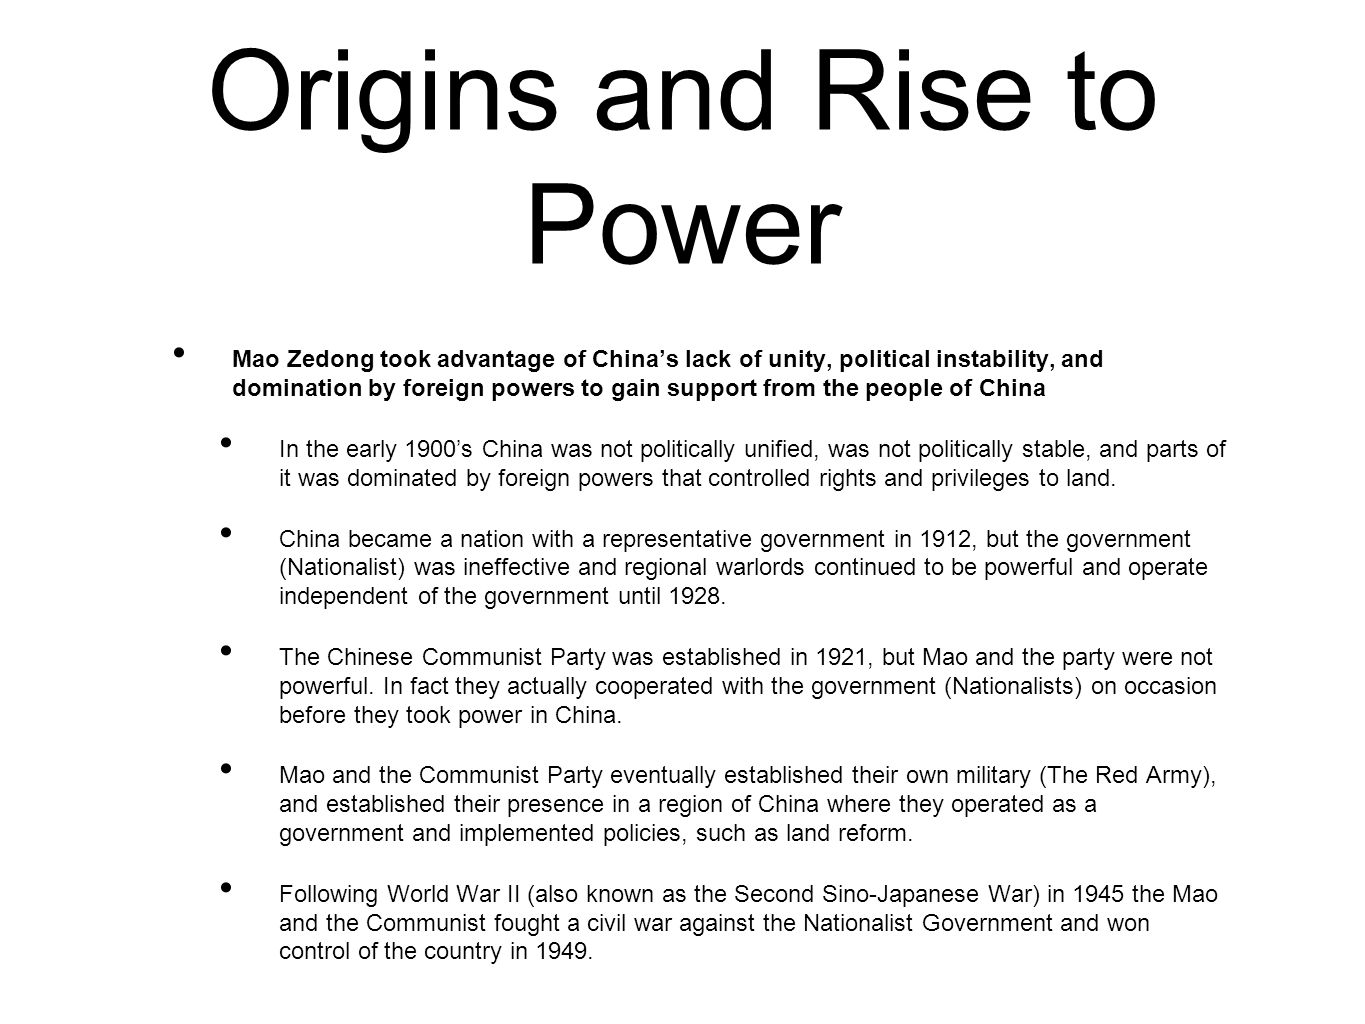 Origins and Rise to Power